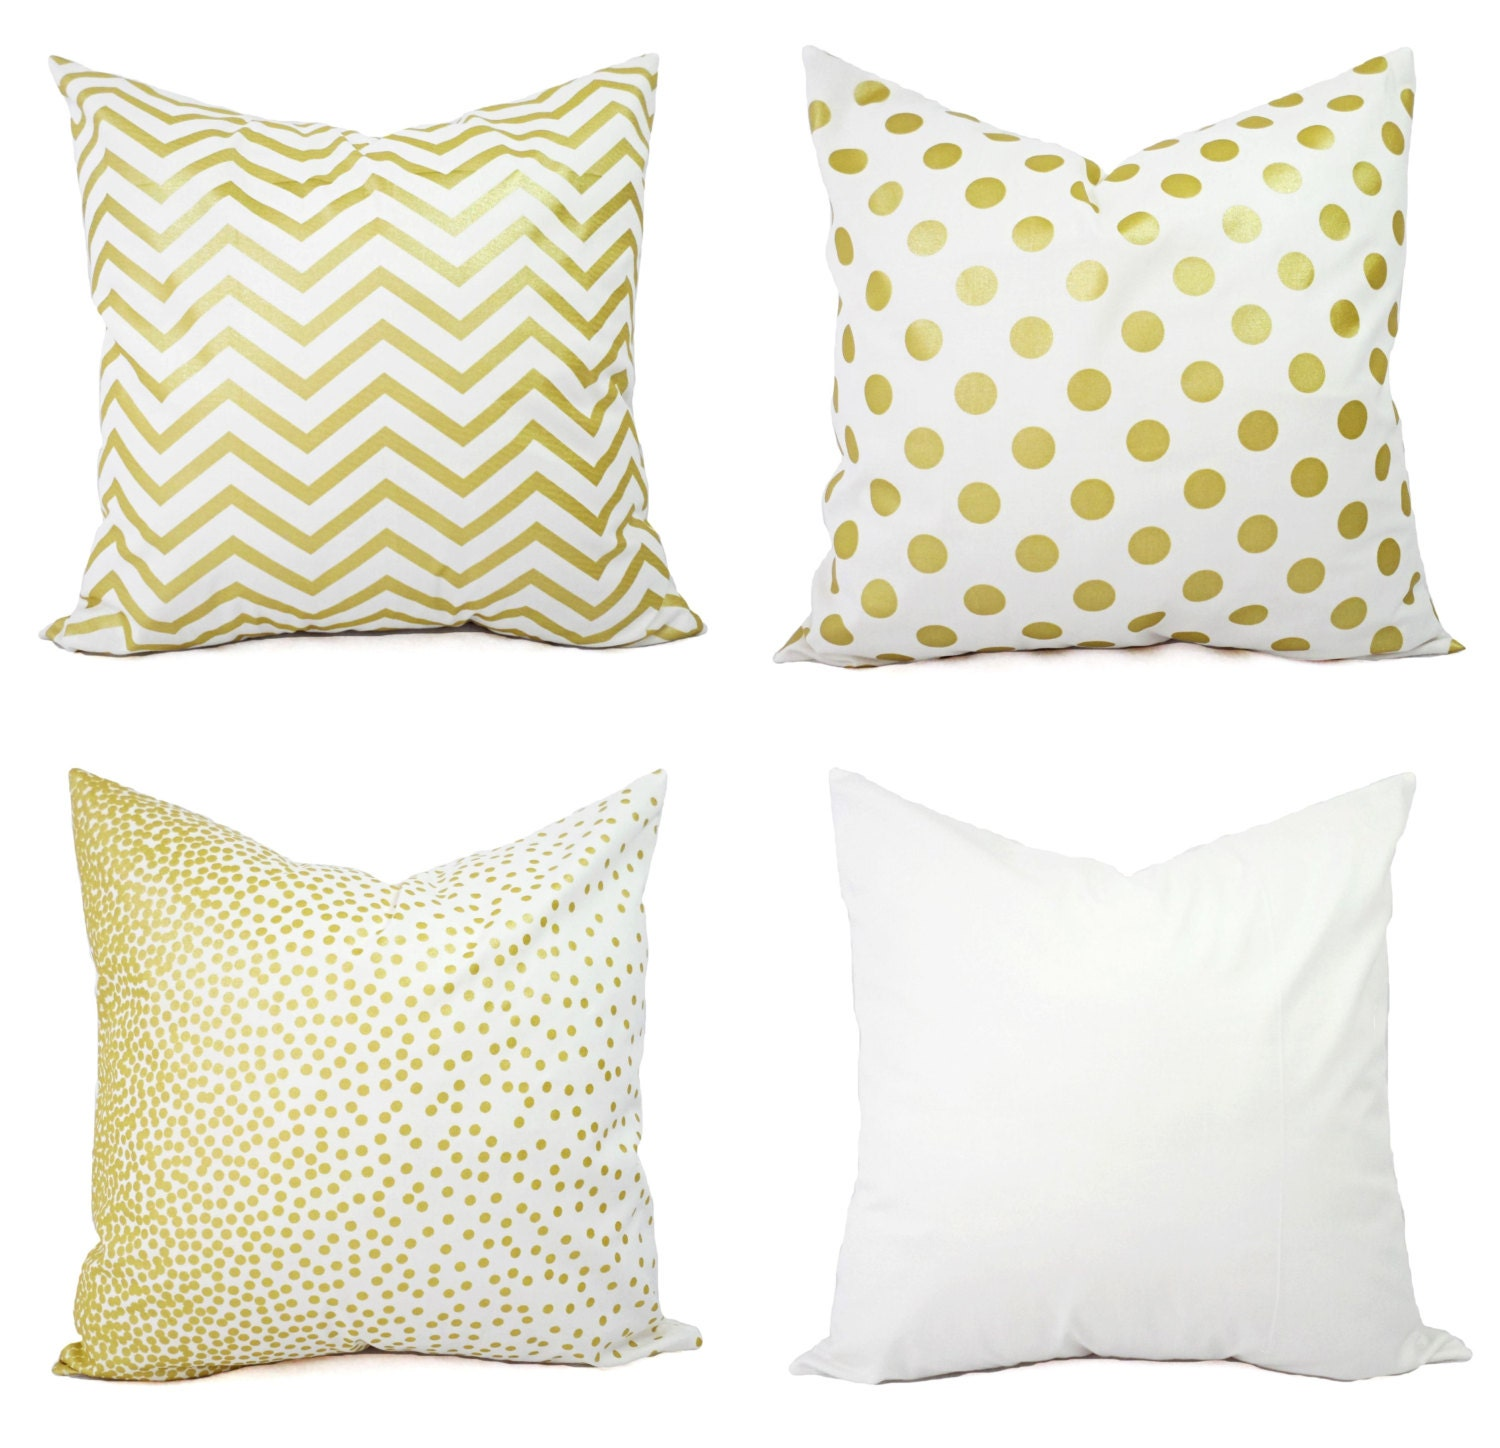 Decorative White Pillow Covers : Kitchen & Dining